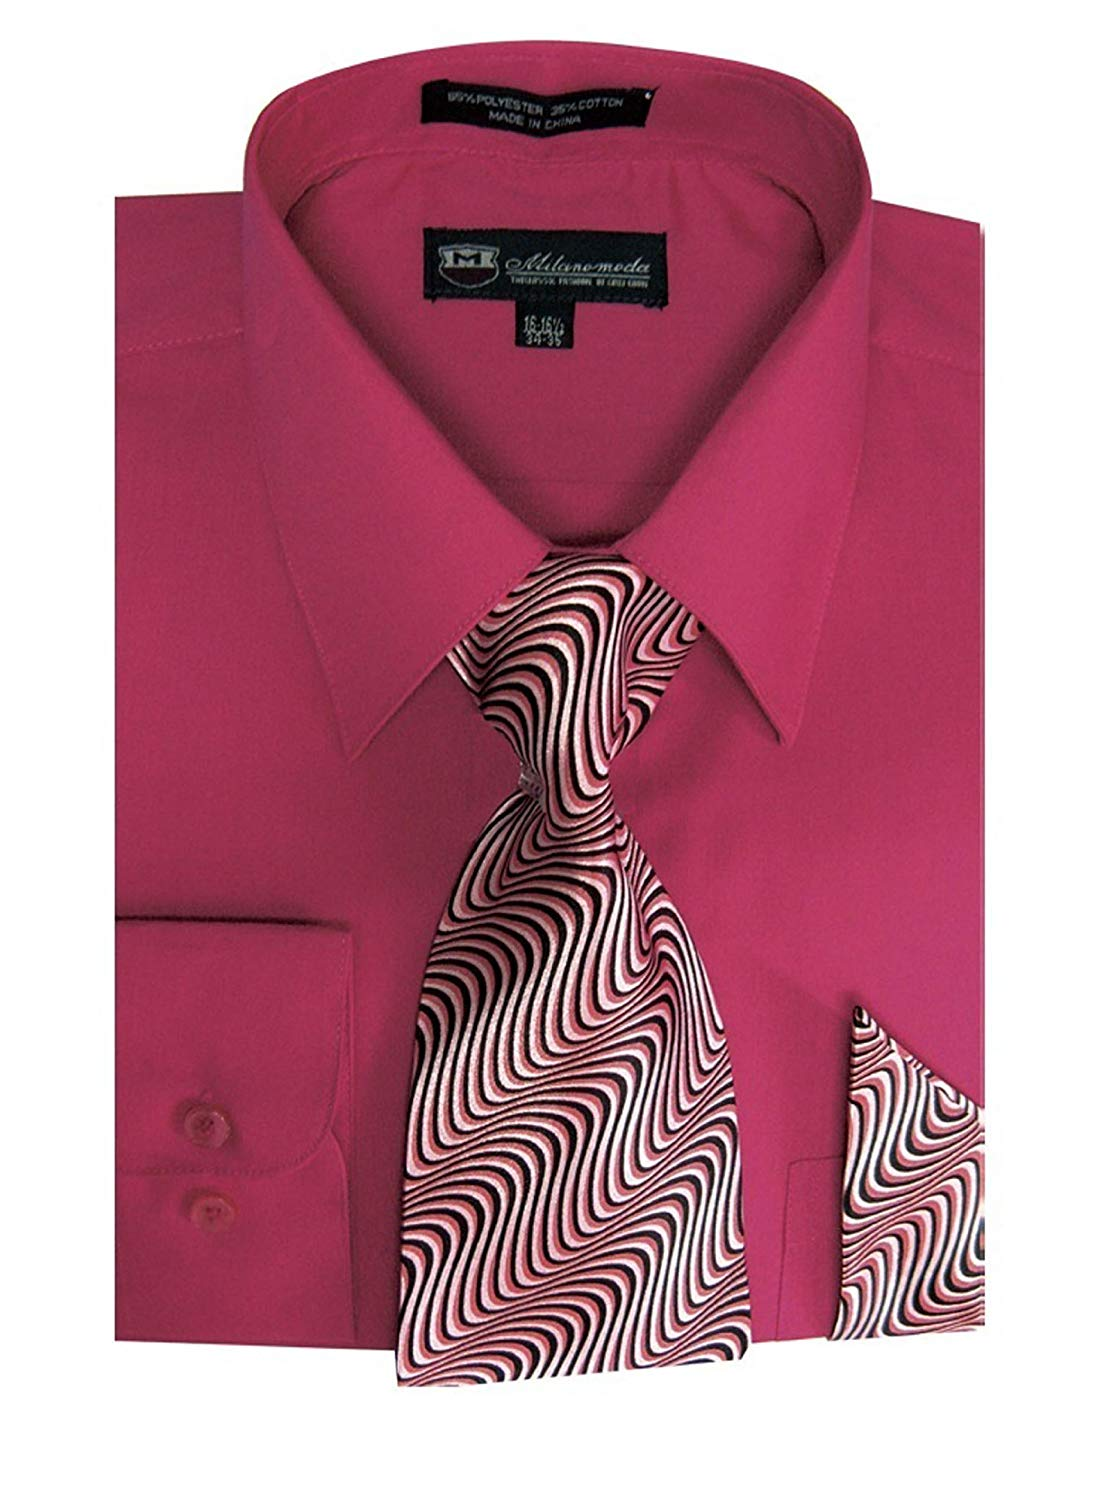 fd8b082d2 Get Quotations · Milano Moda Men's Long Sleeve Dress Shirt With Matching Tie  And Handkerchief SG21A